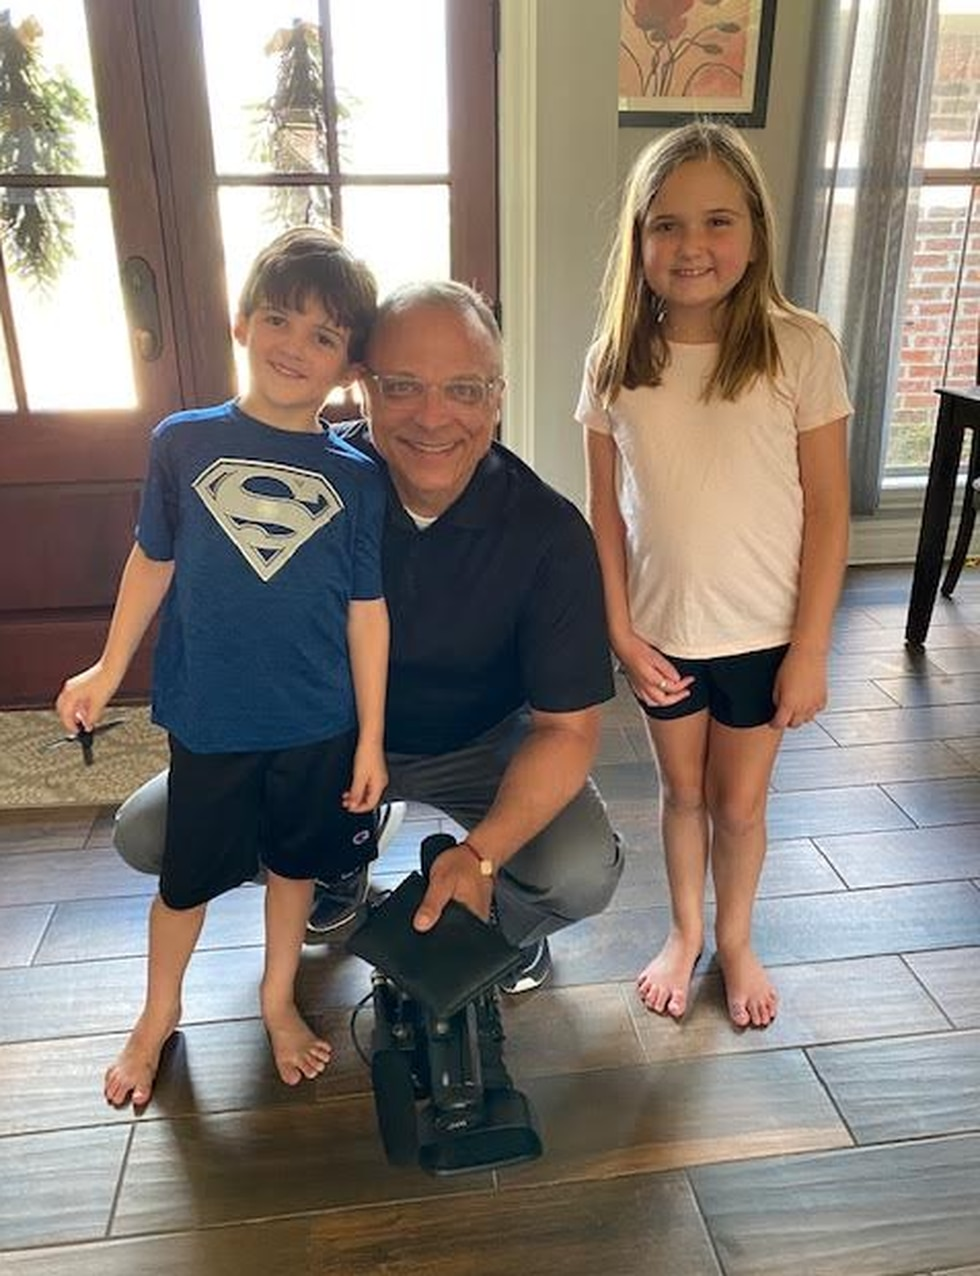 KSLA News 12's Doug Warner visits with Taylor (right) and her brother Pierson.